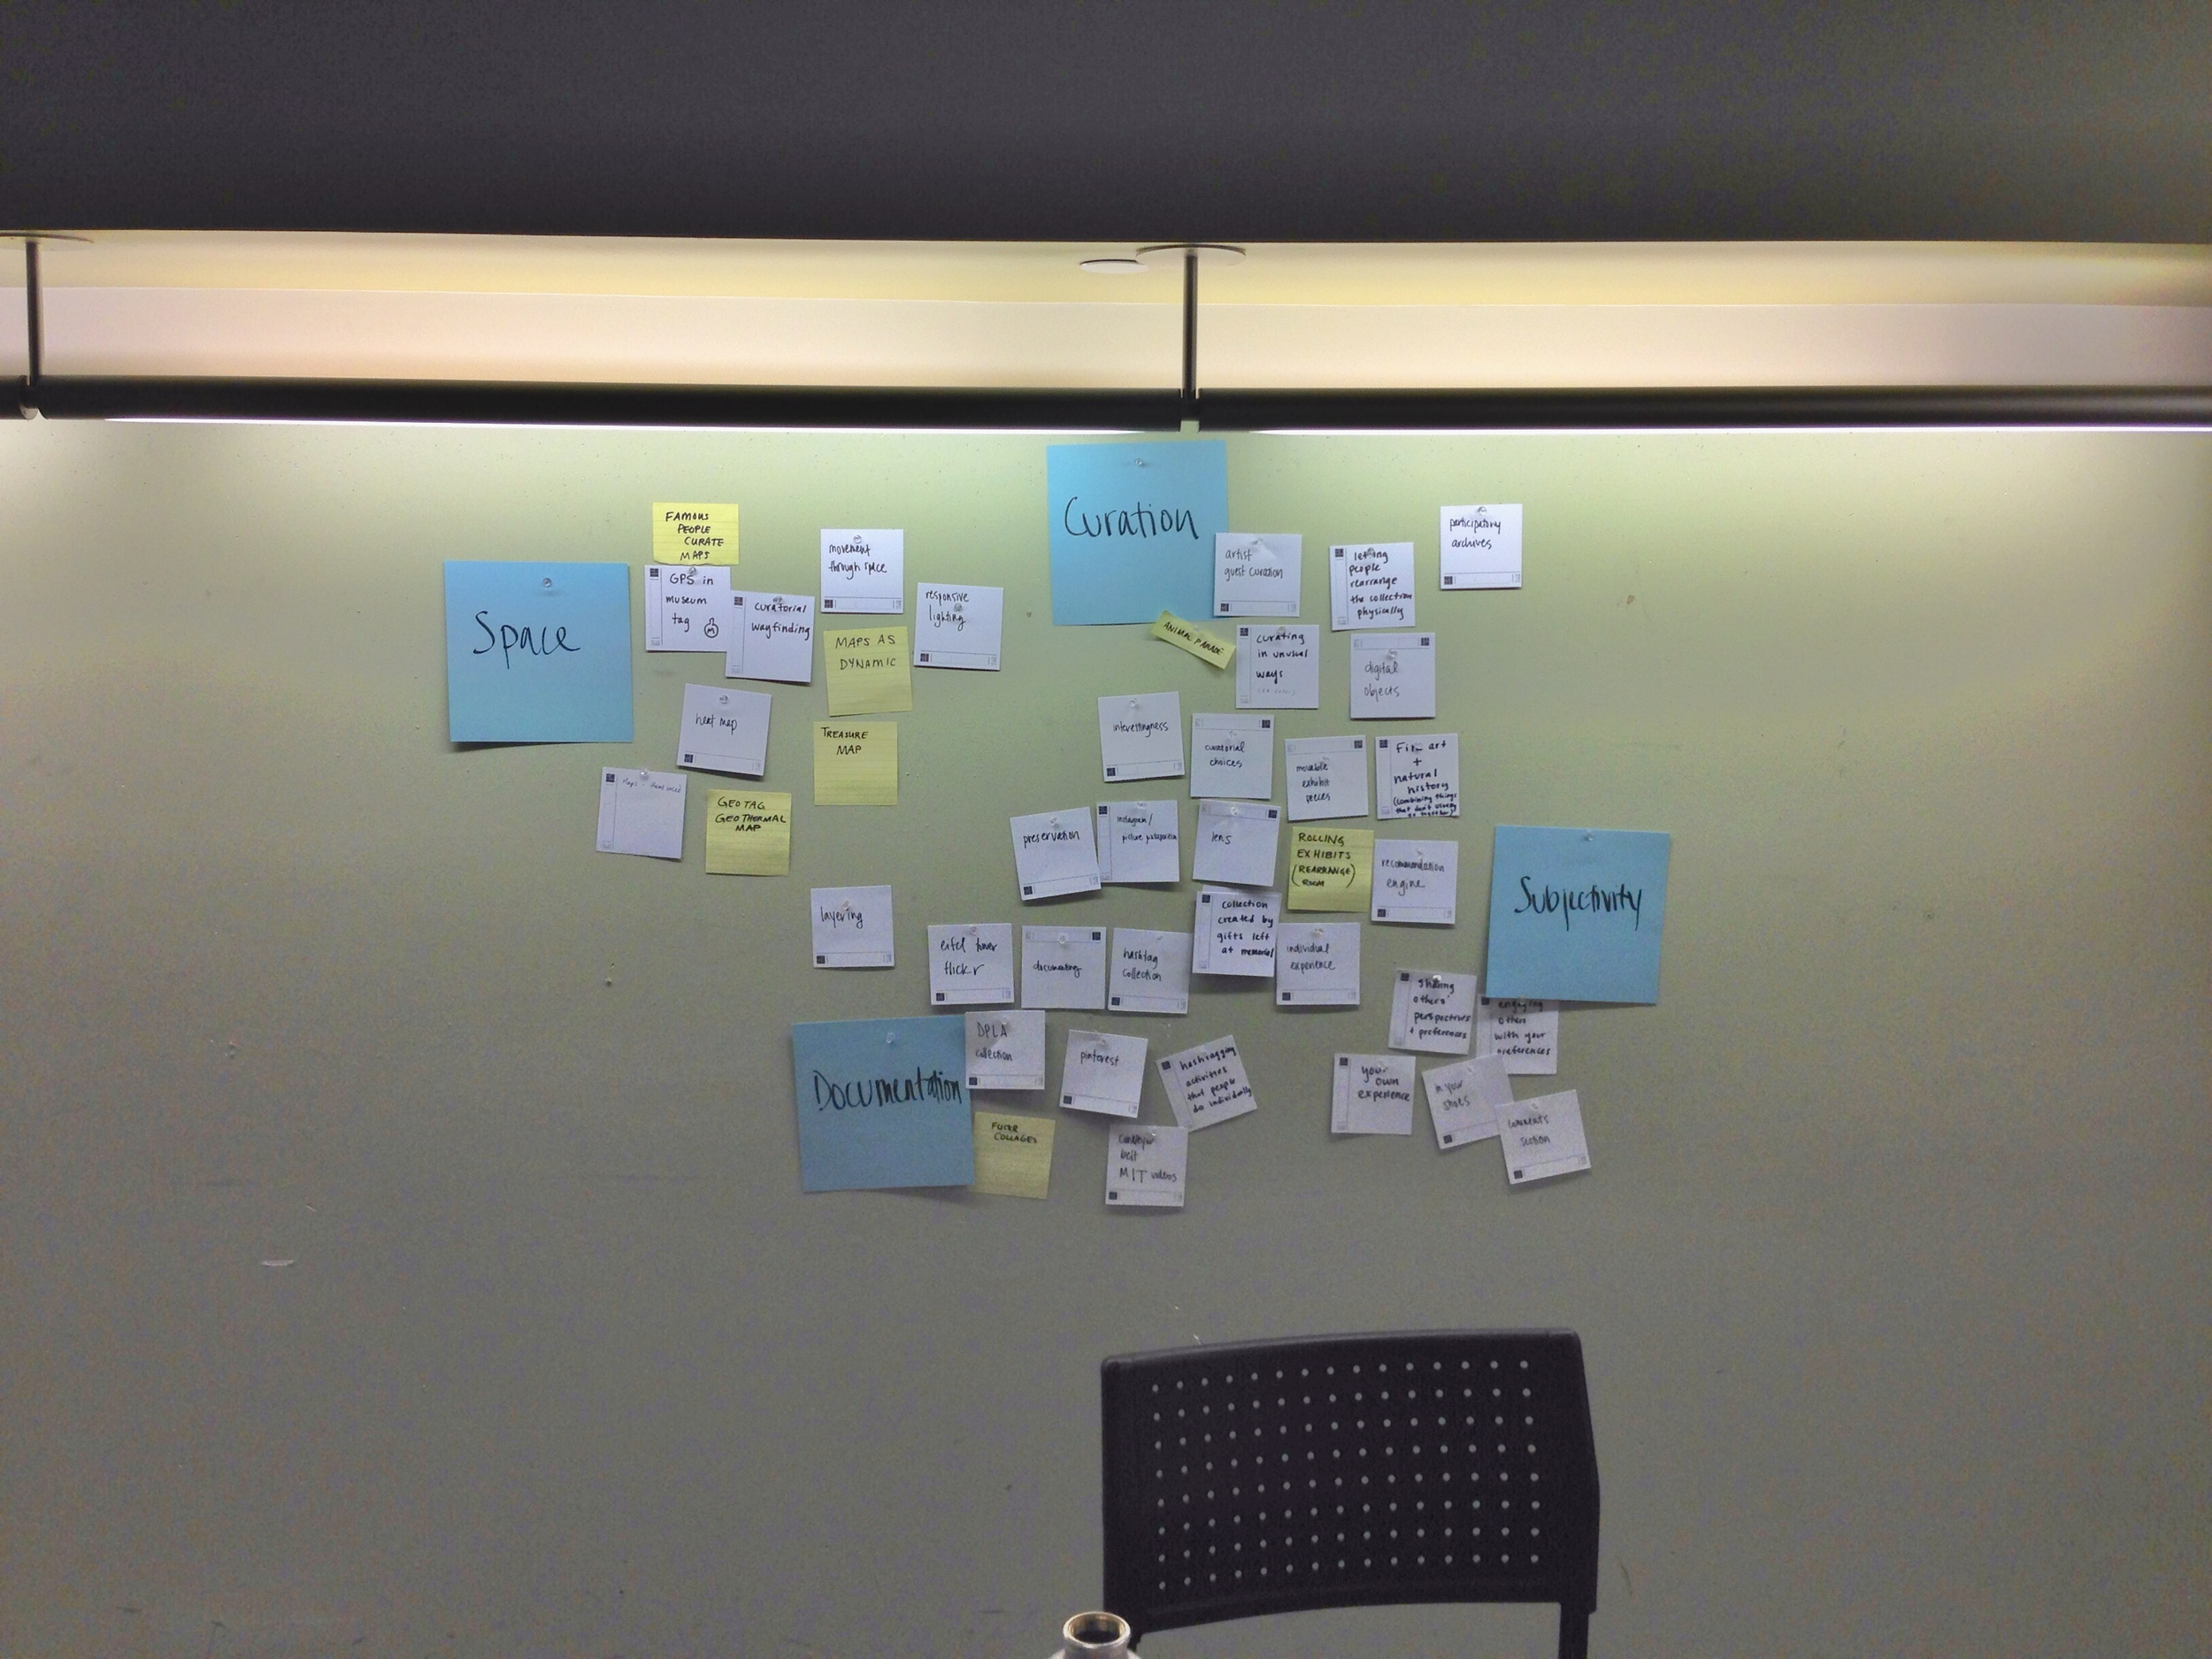 Brainstorming cards organized and thematically categorized after with blue cards - one step in the design process.